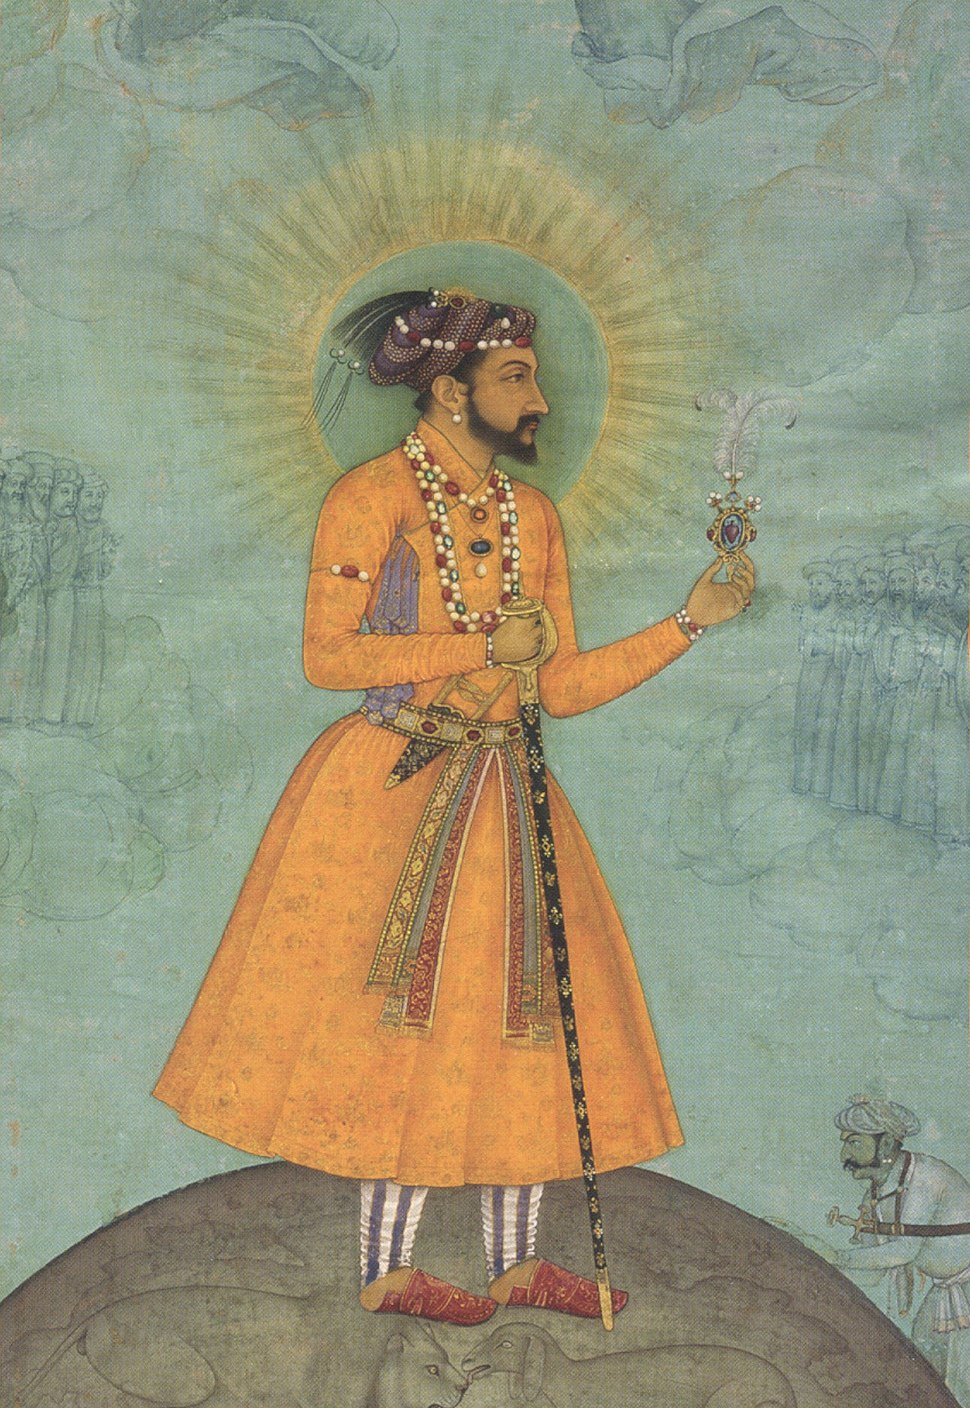 'Jujhar Singh Bundela Kneels in Submission to Shah Jahan', painted by Bichitr, c. 1630, Chester Beatty Library (cropped)